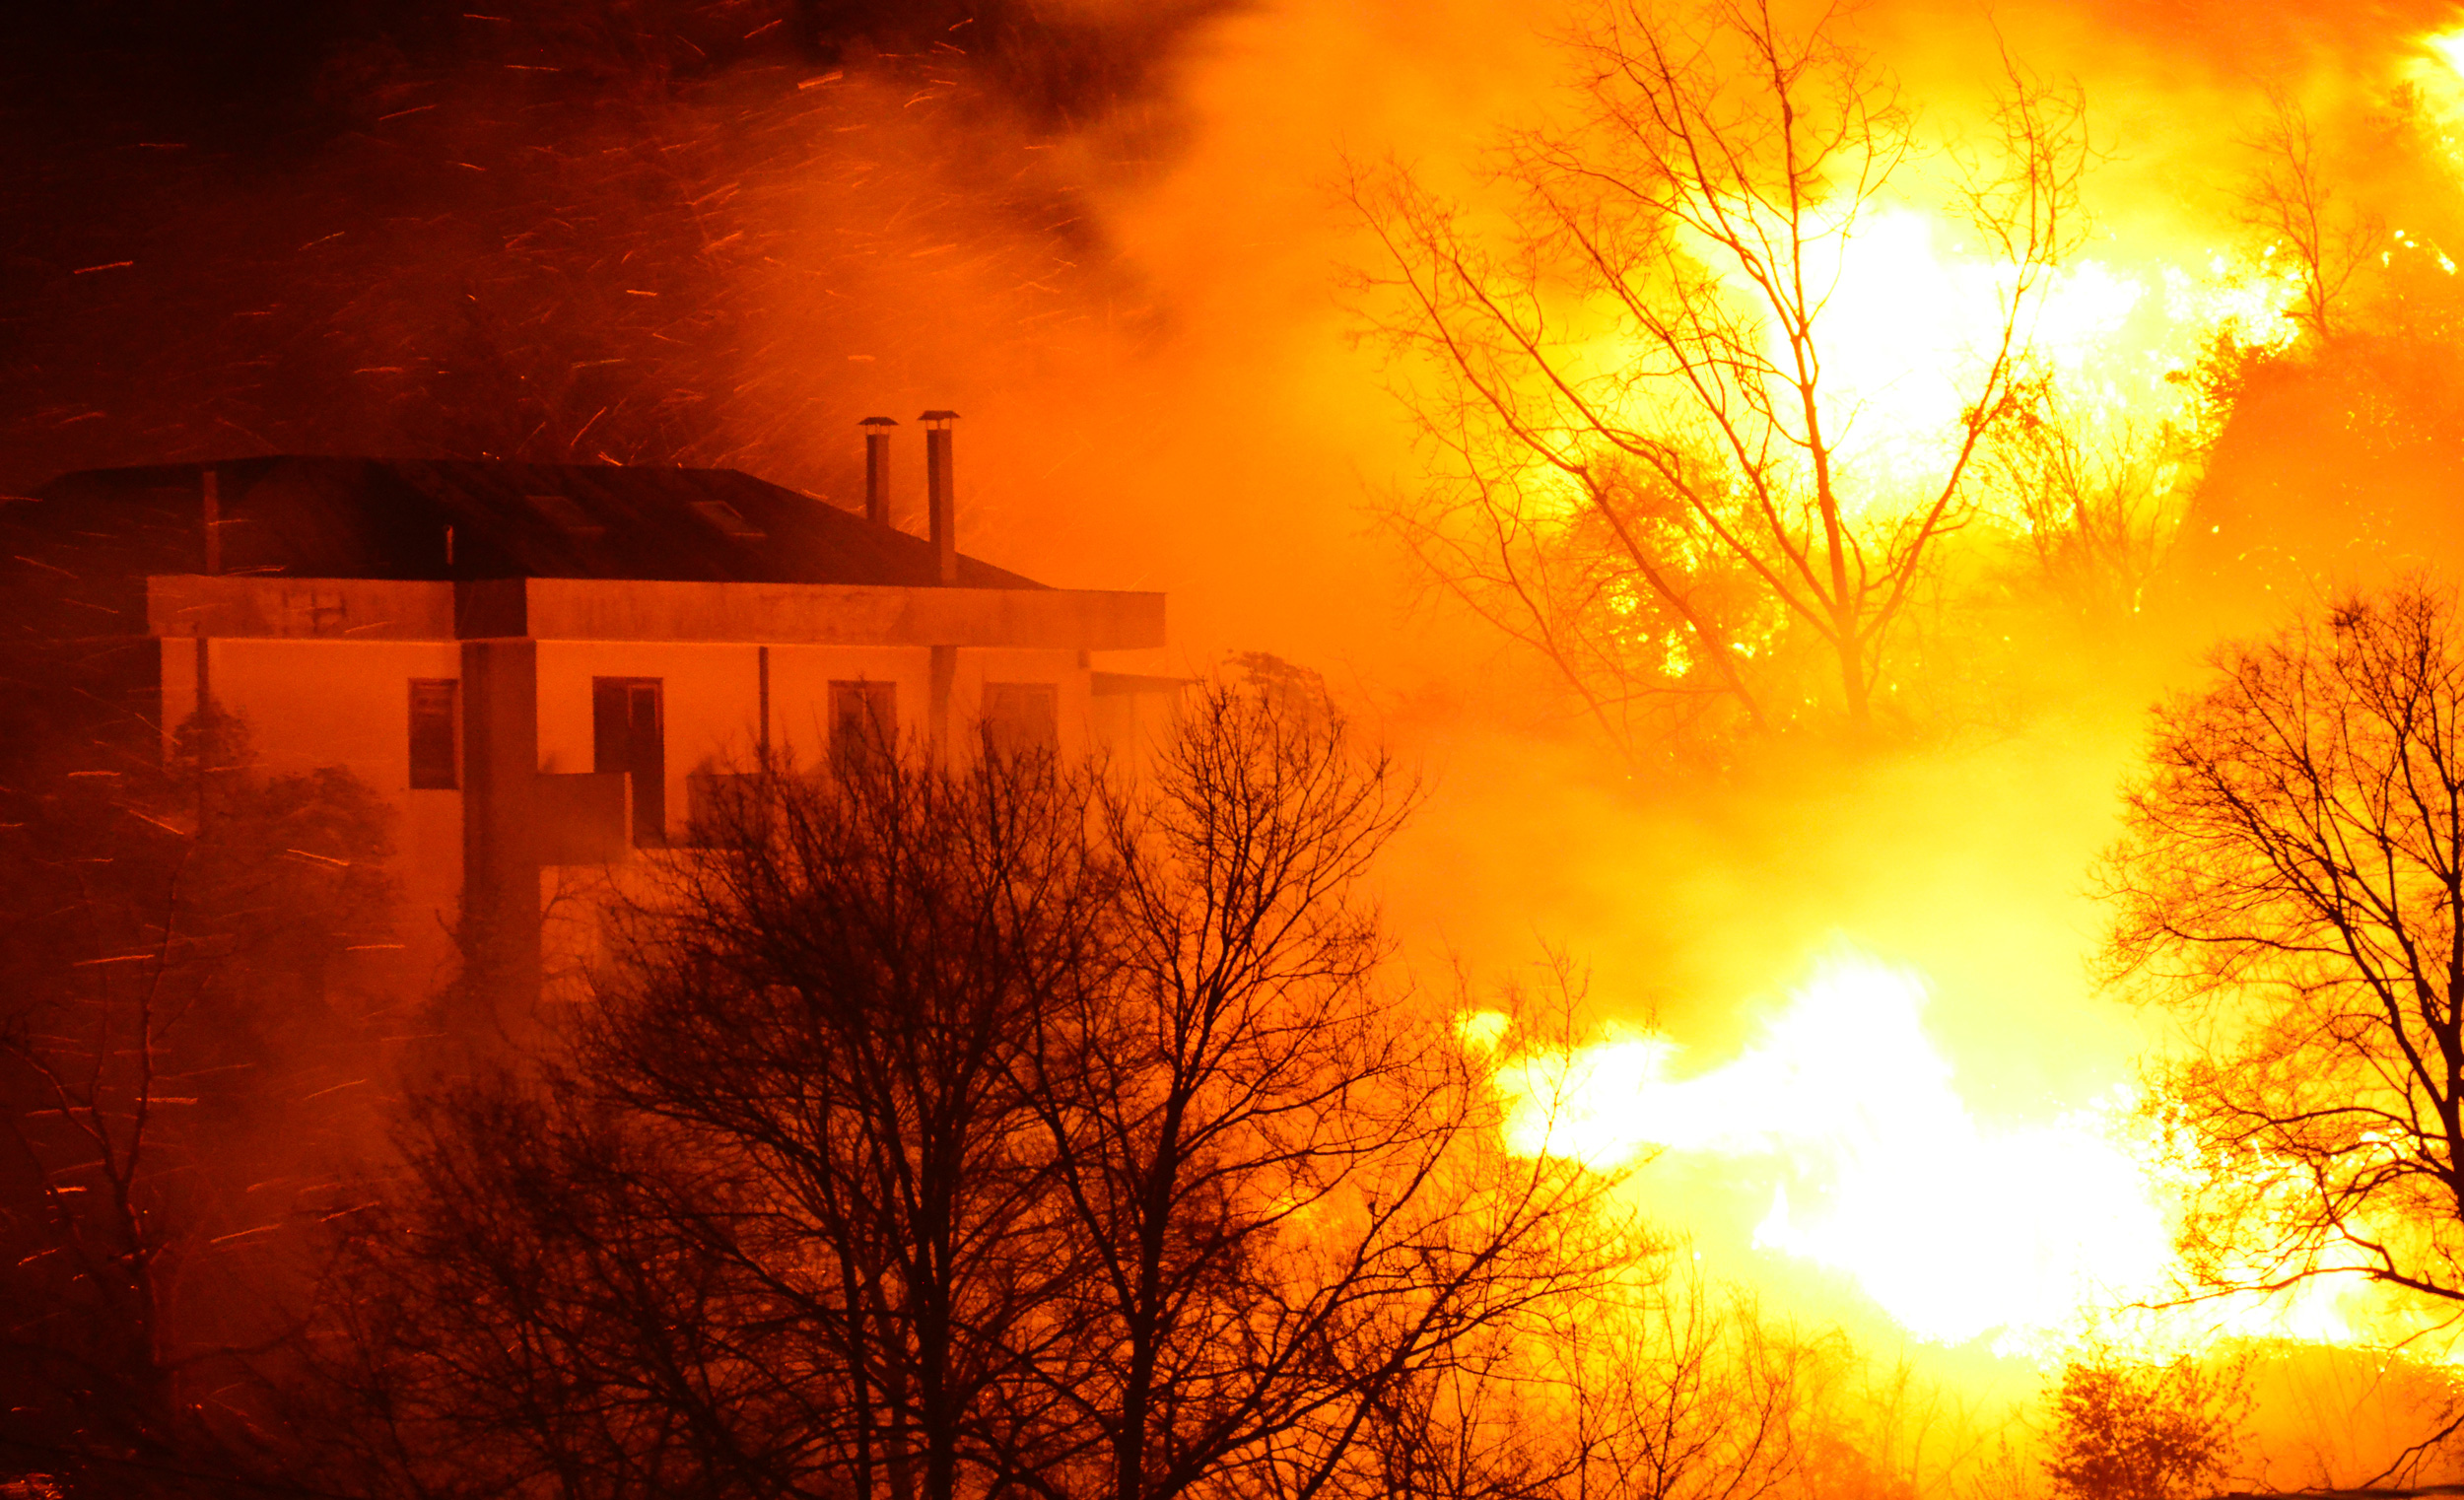 How To Protect Your House From An Ember Attack | King Group